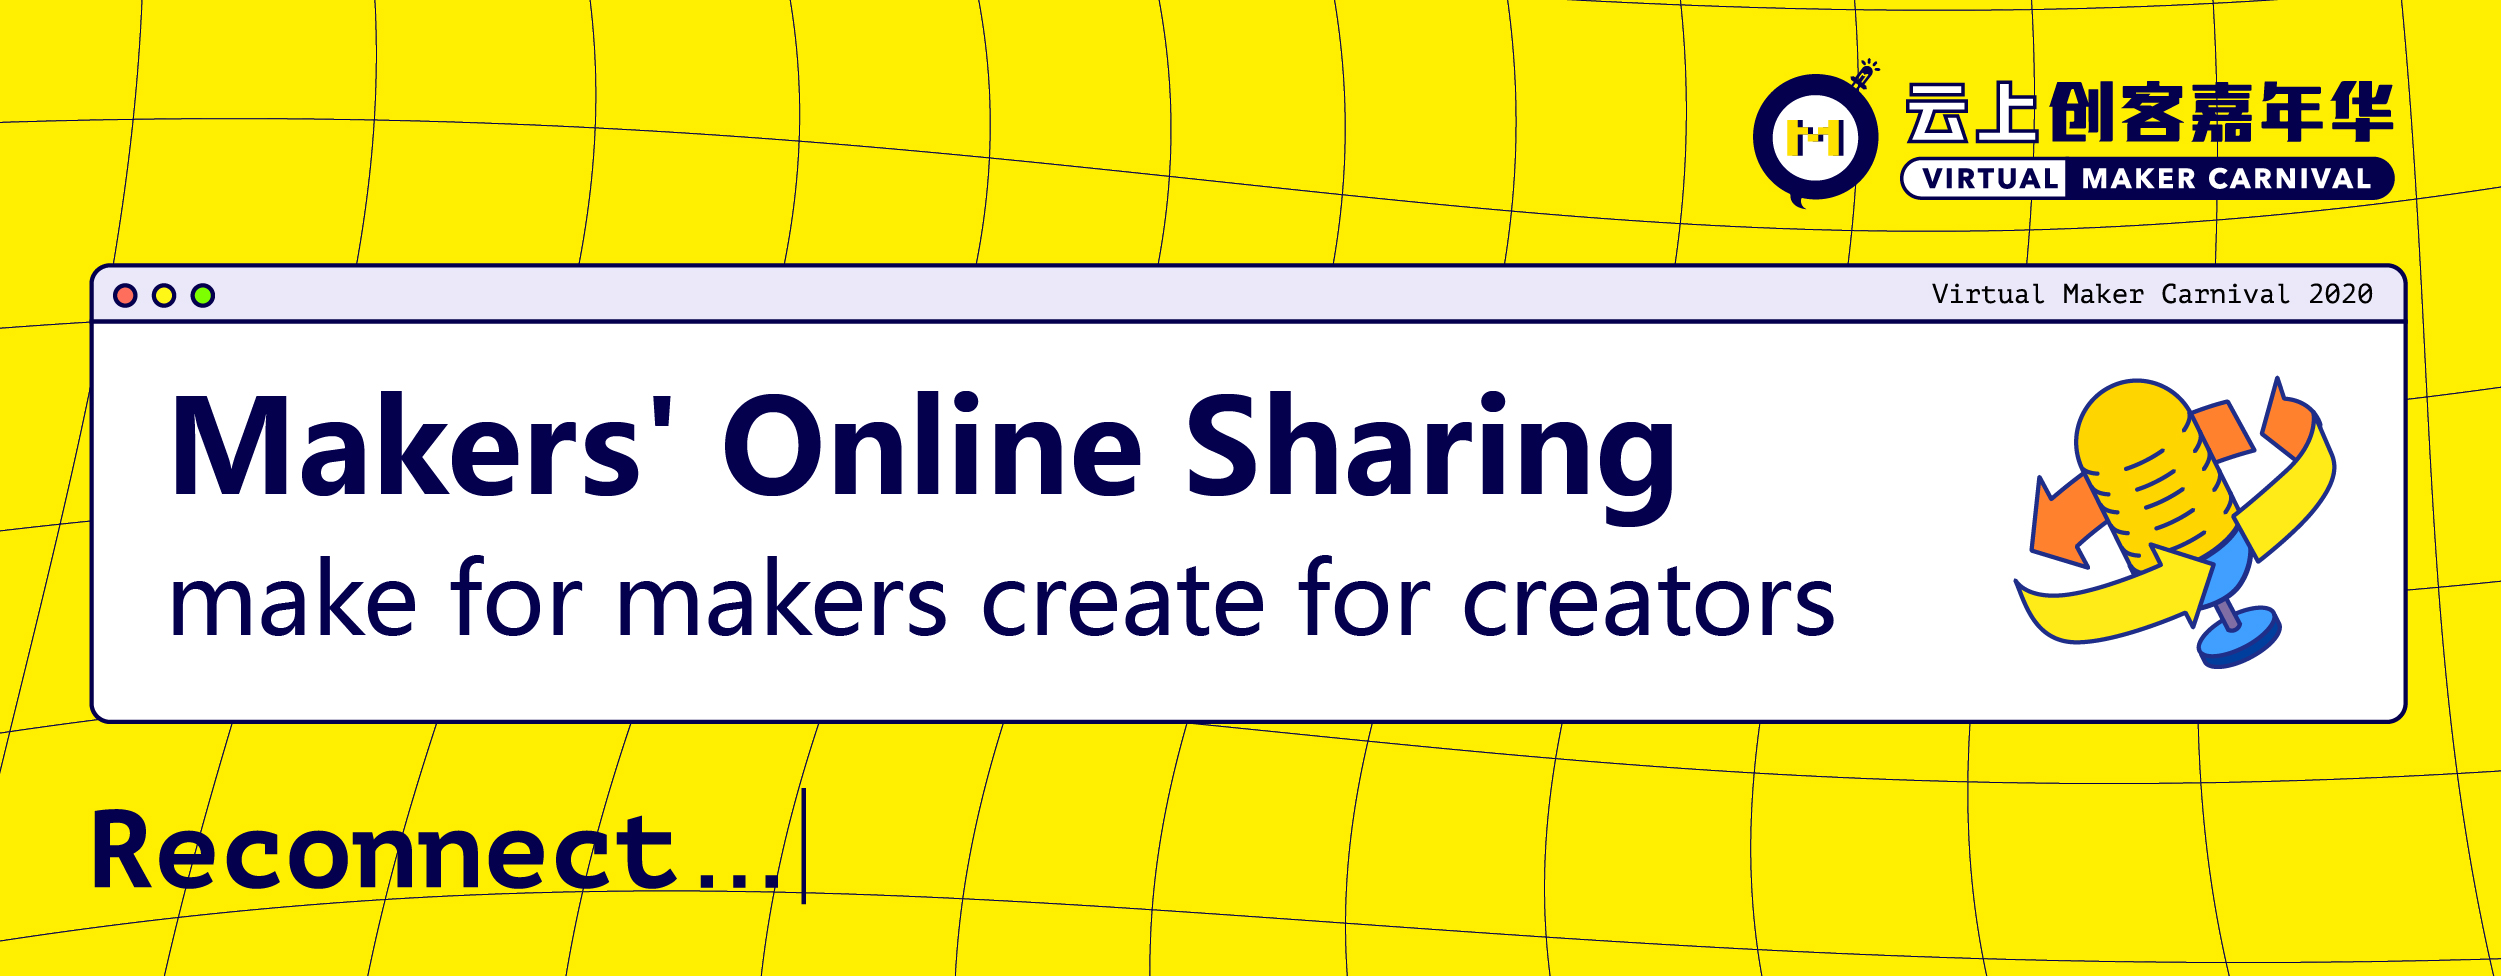 Makers' Online Sharing